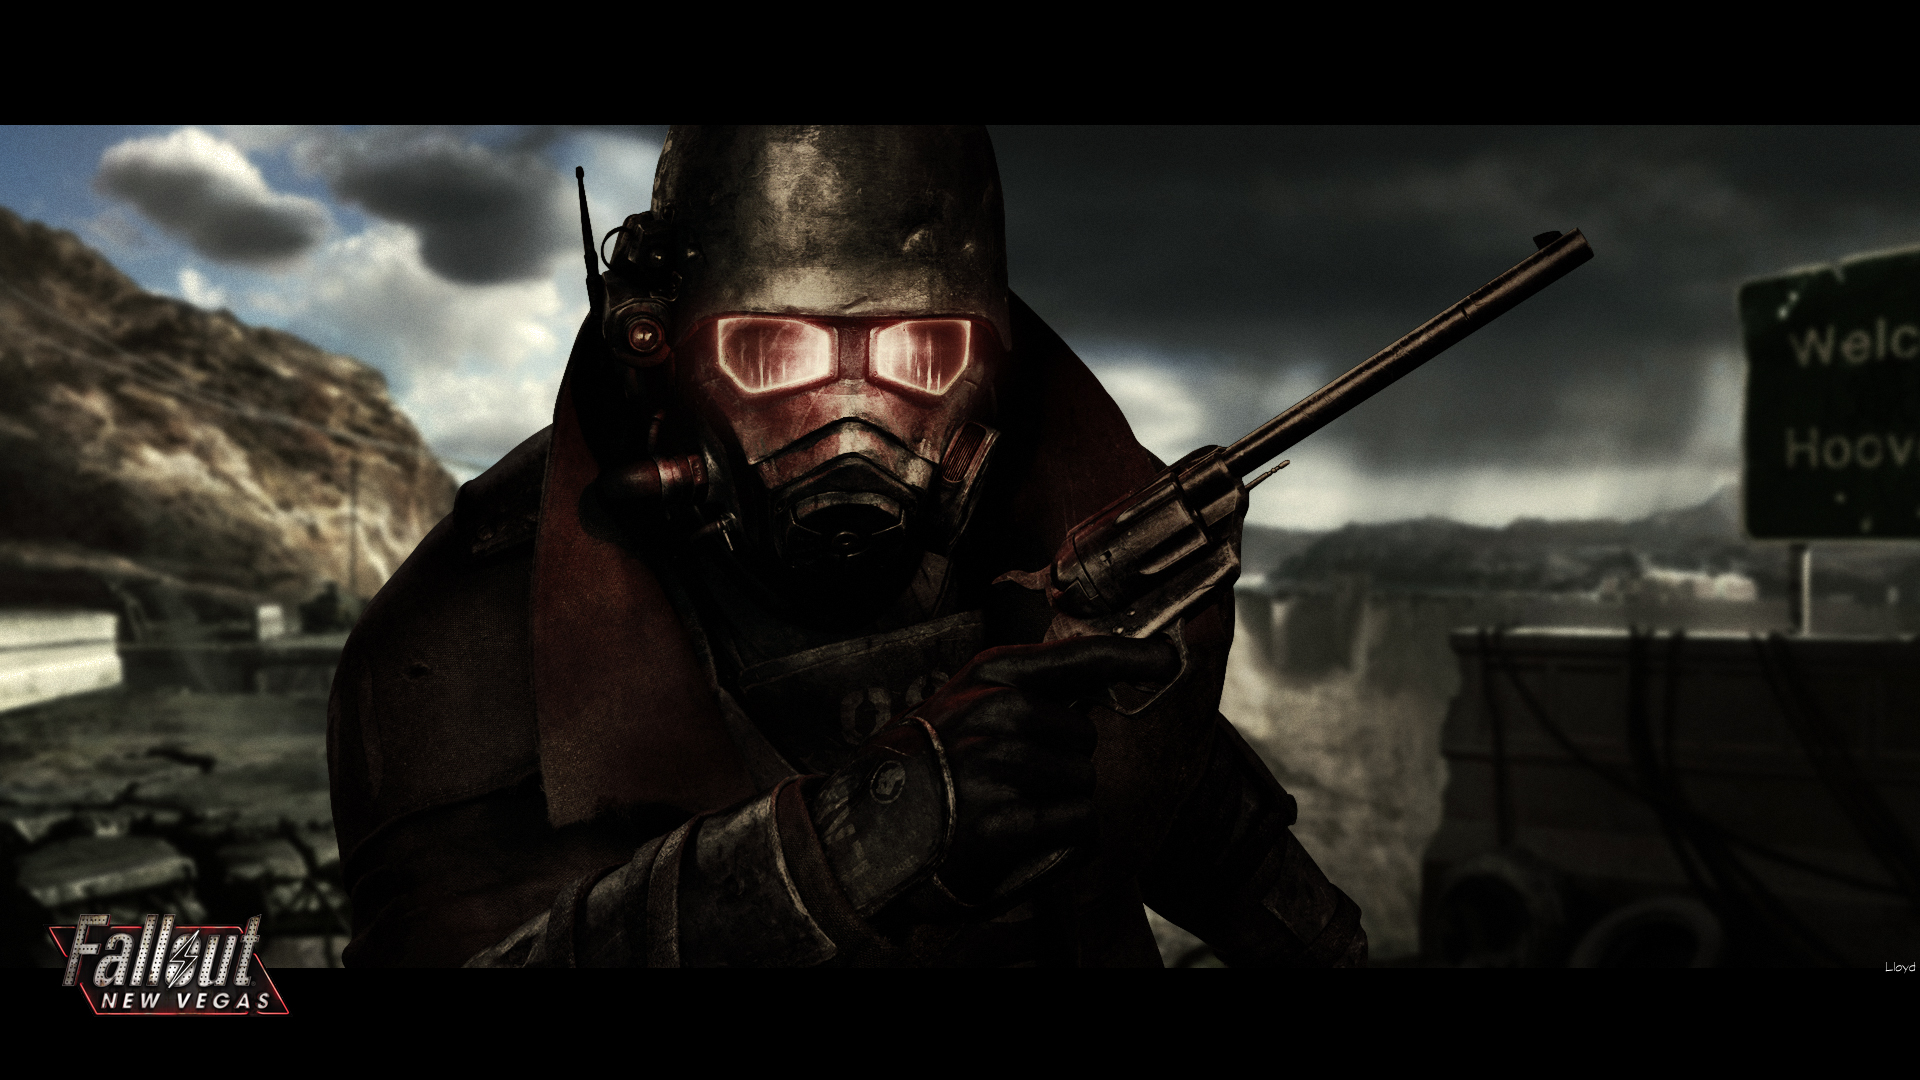 Fallout New Vegas Wallpaper by igotgame1075